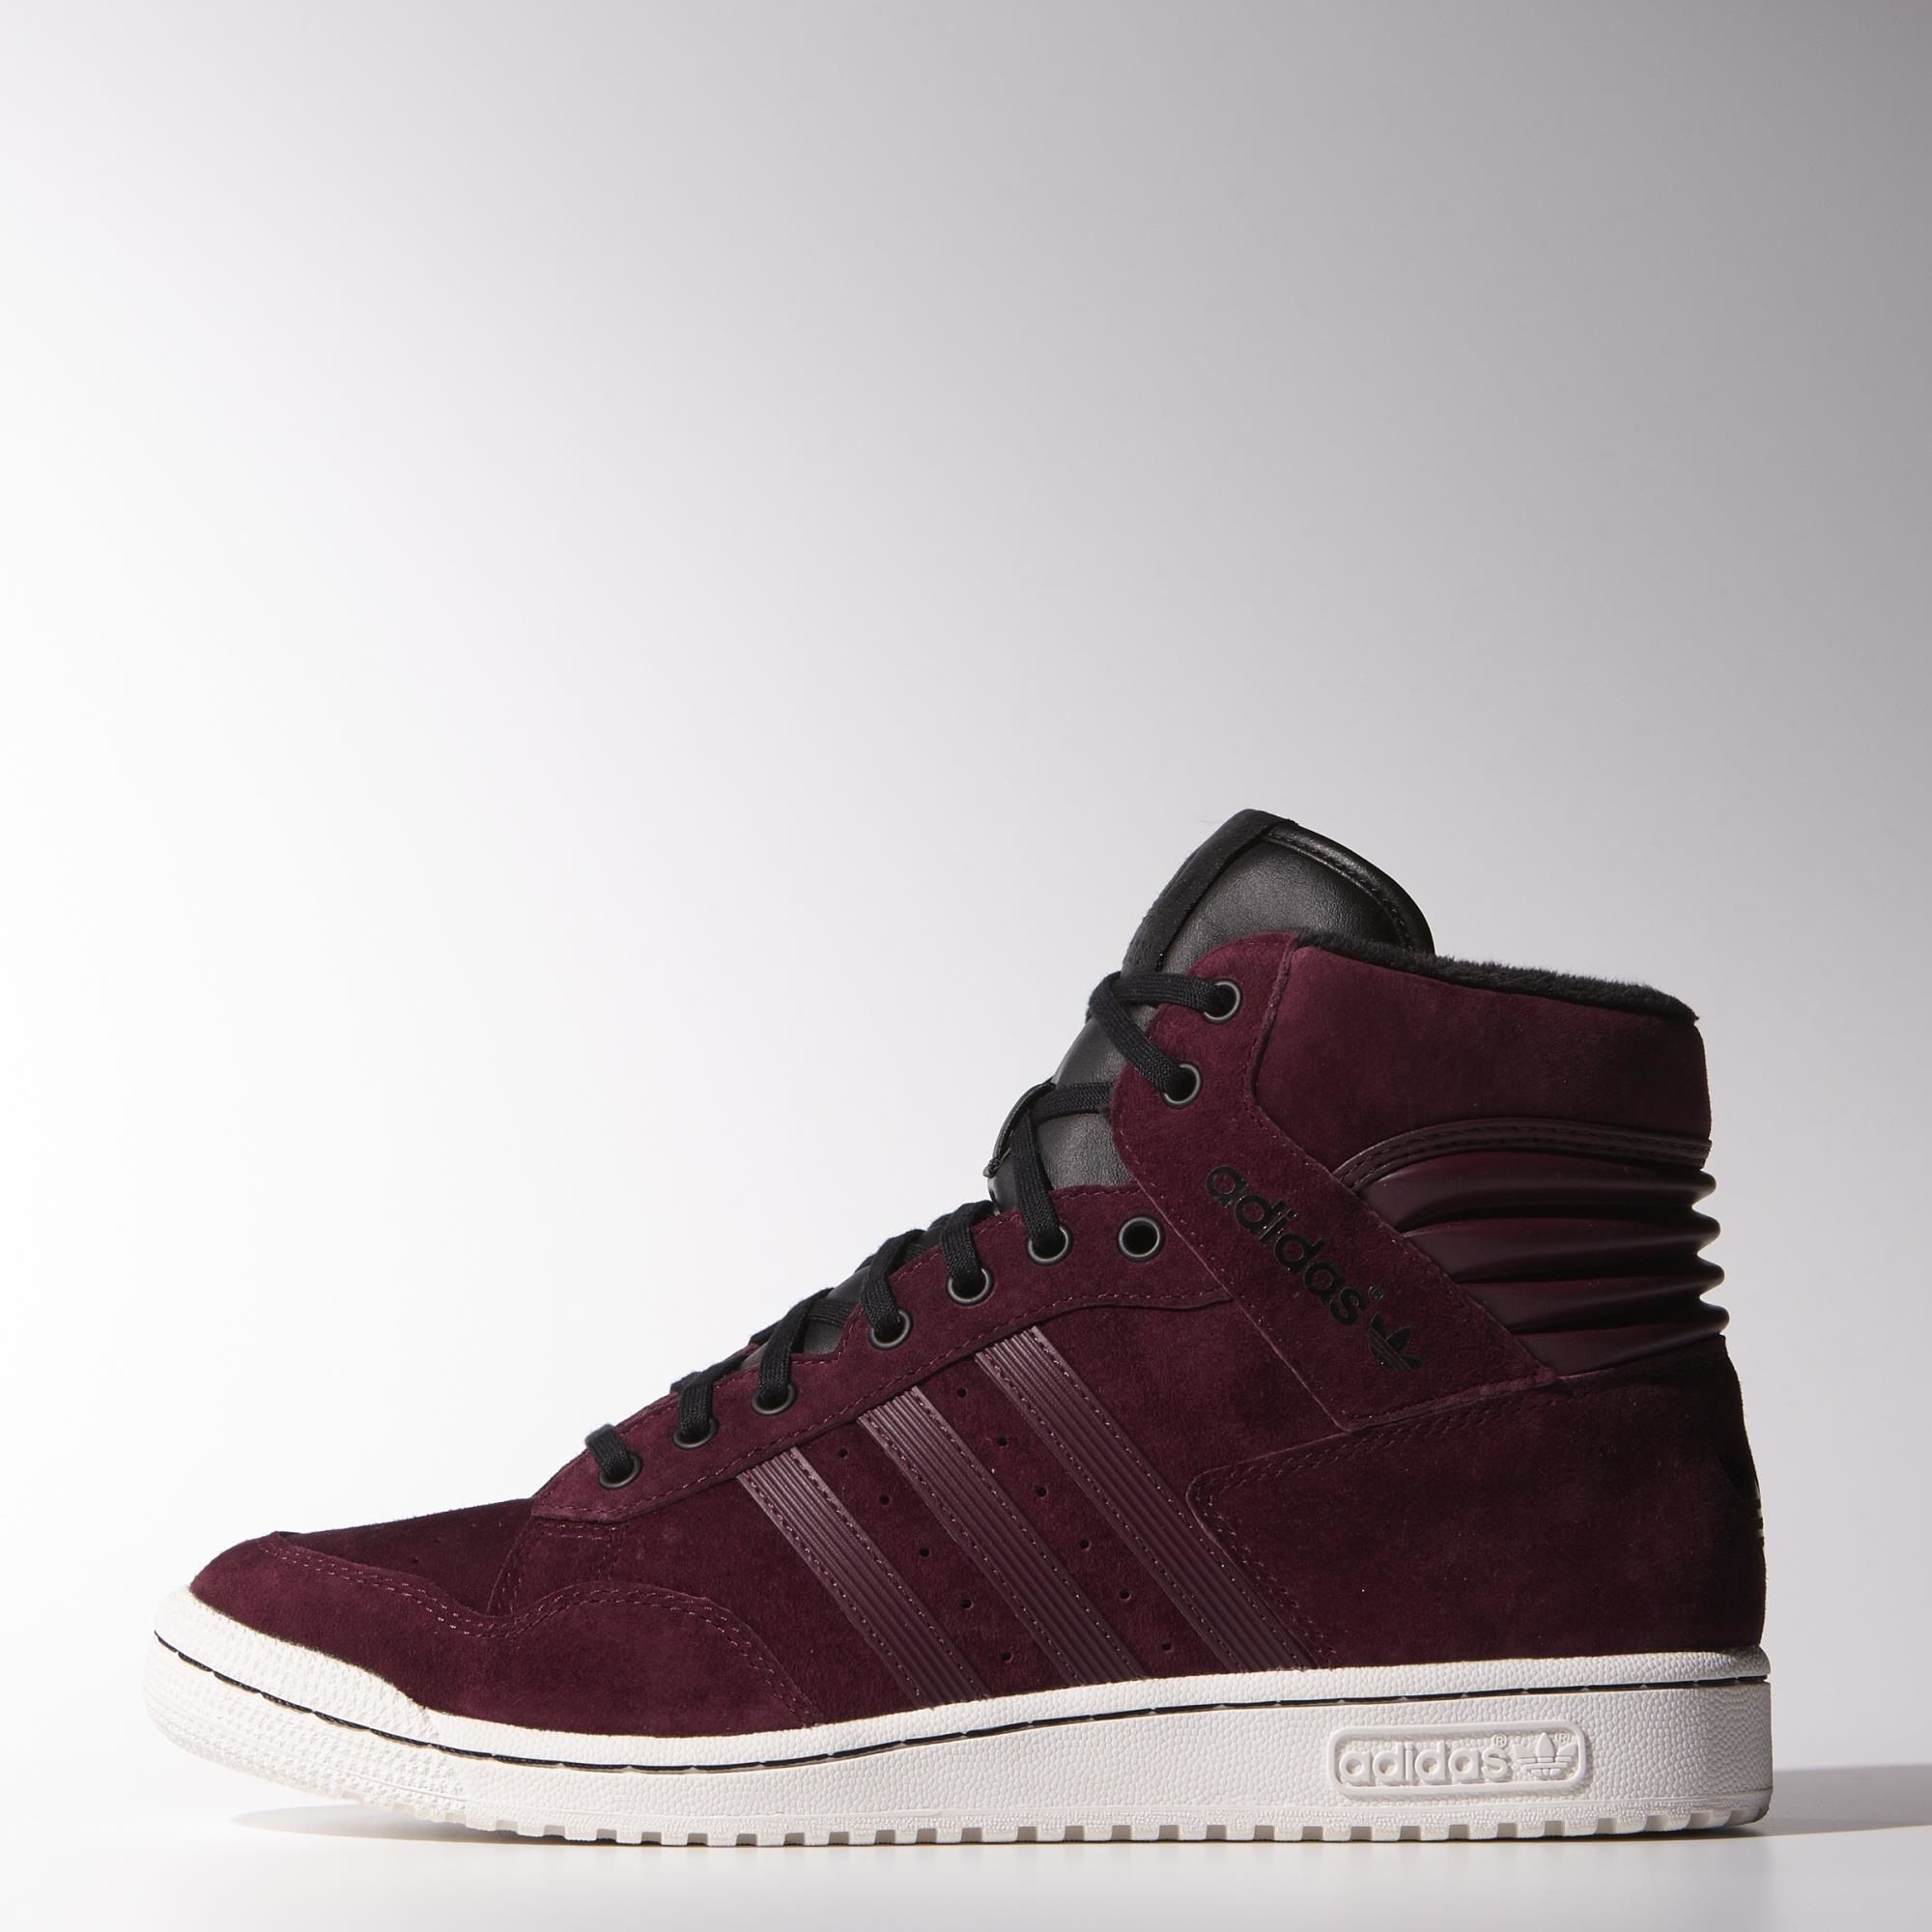 Adidas burgundy suede and black leather detail high top